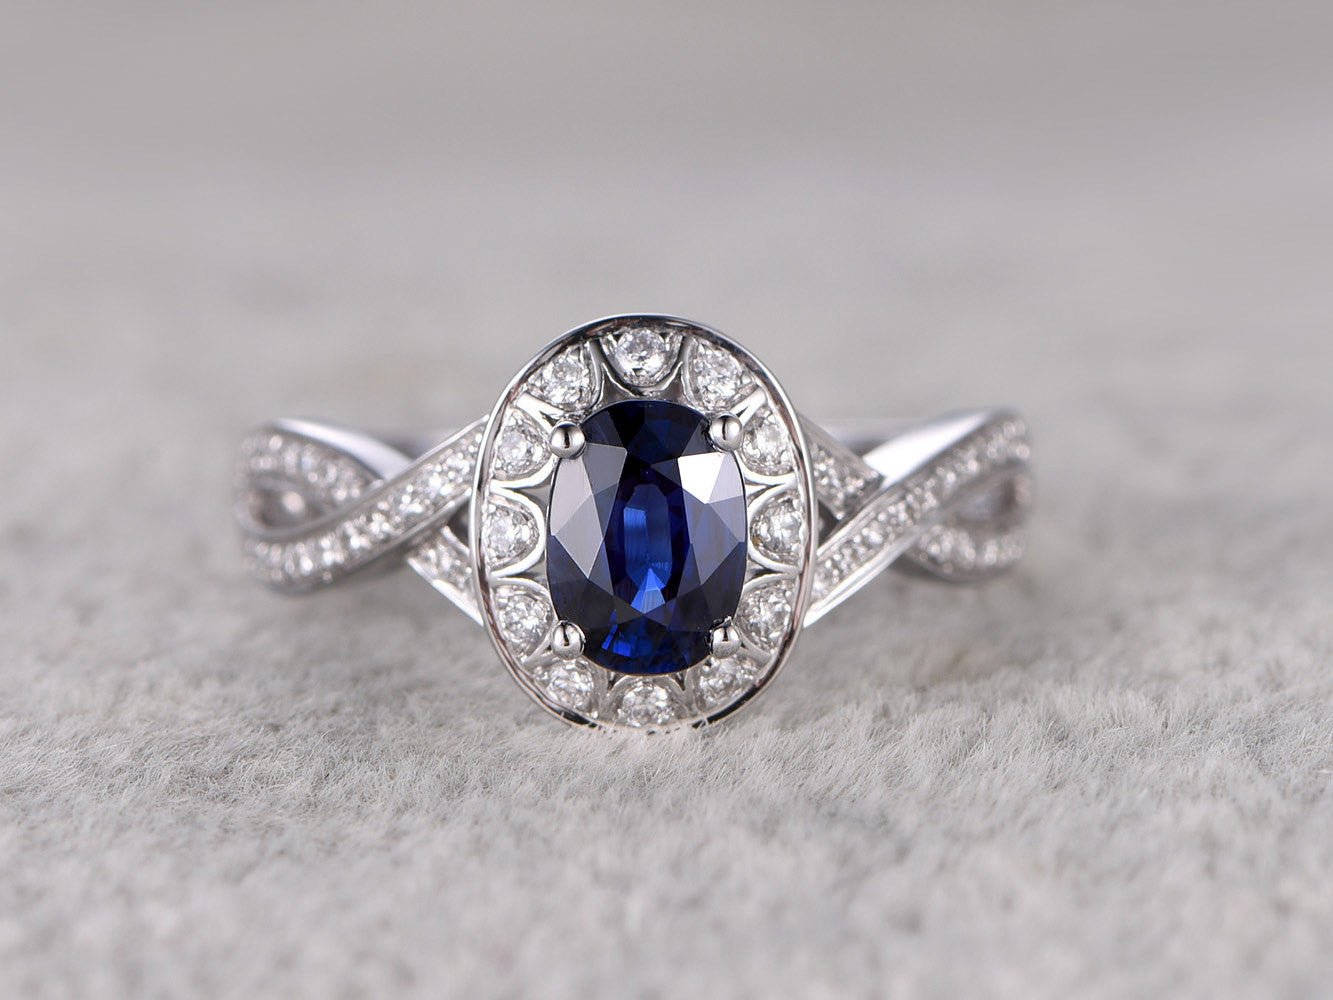 Natural Sapphire Engagement ring,1.18ctw Blue stone,Curved Loop Diamond wedding band,14K White Gold